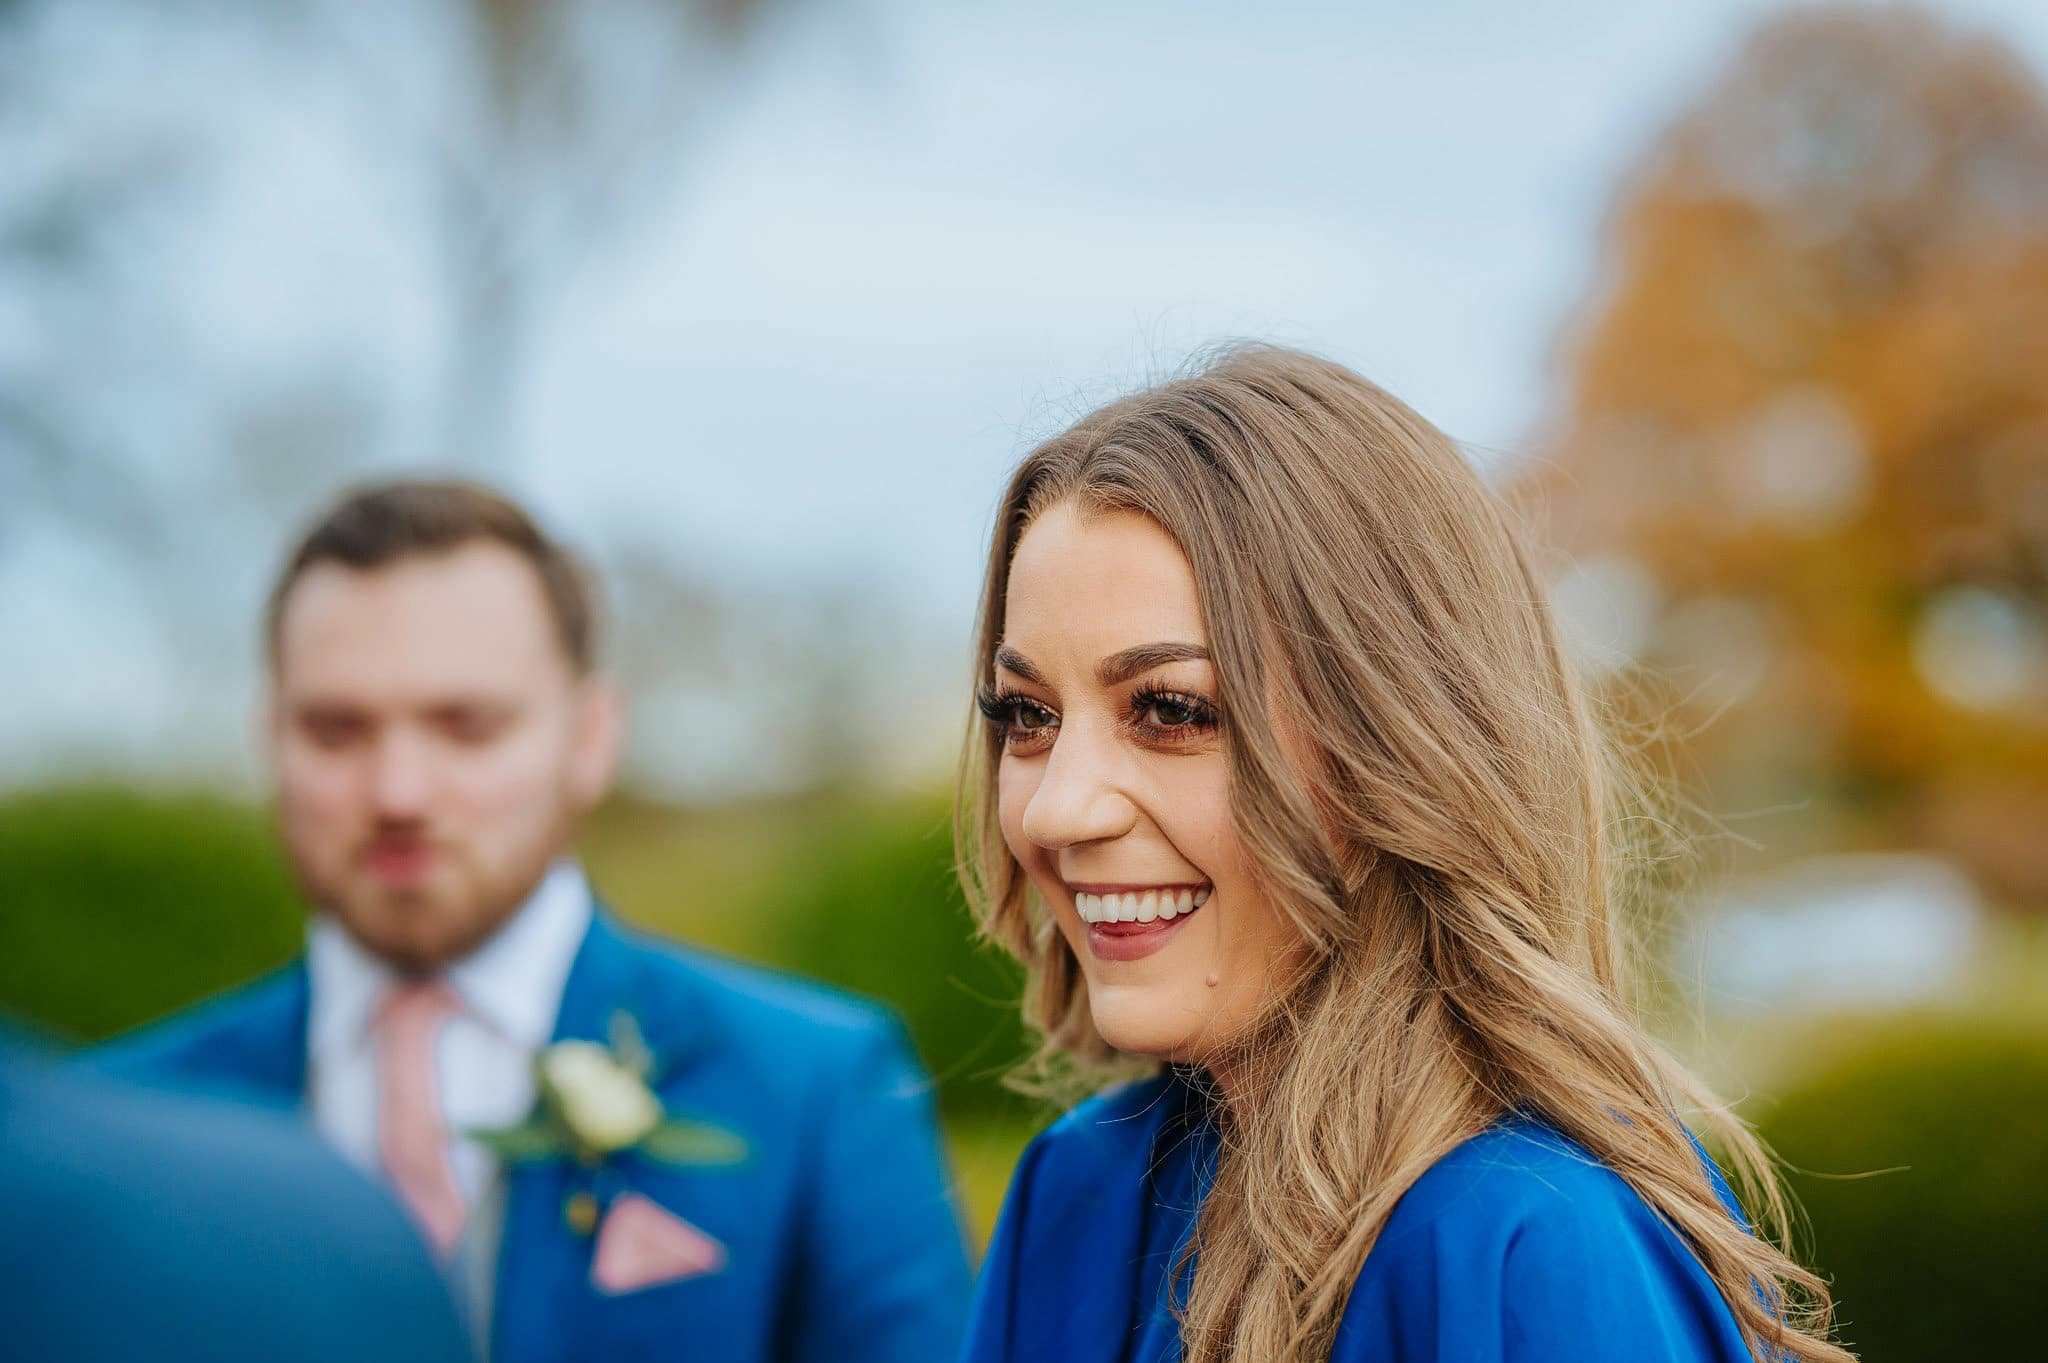 Sigma 85mm F1.4 ART review vs Wedding Photography 10